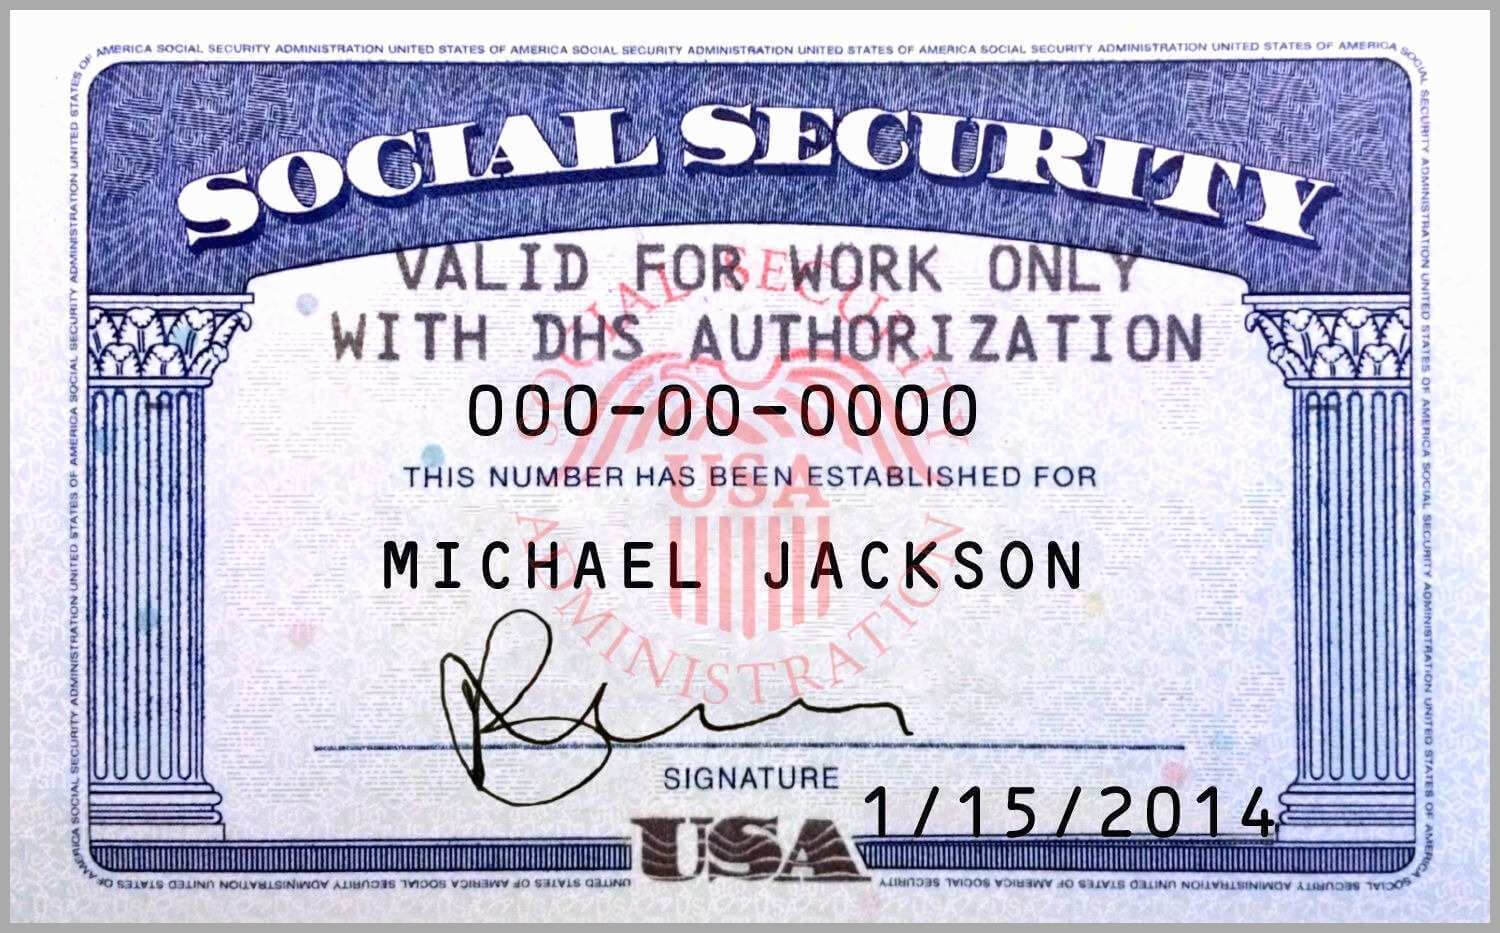 10 Blank Social Security Card Template | Proposal Sample For Blank Social Security Card Template